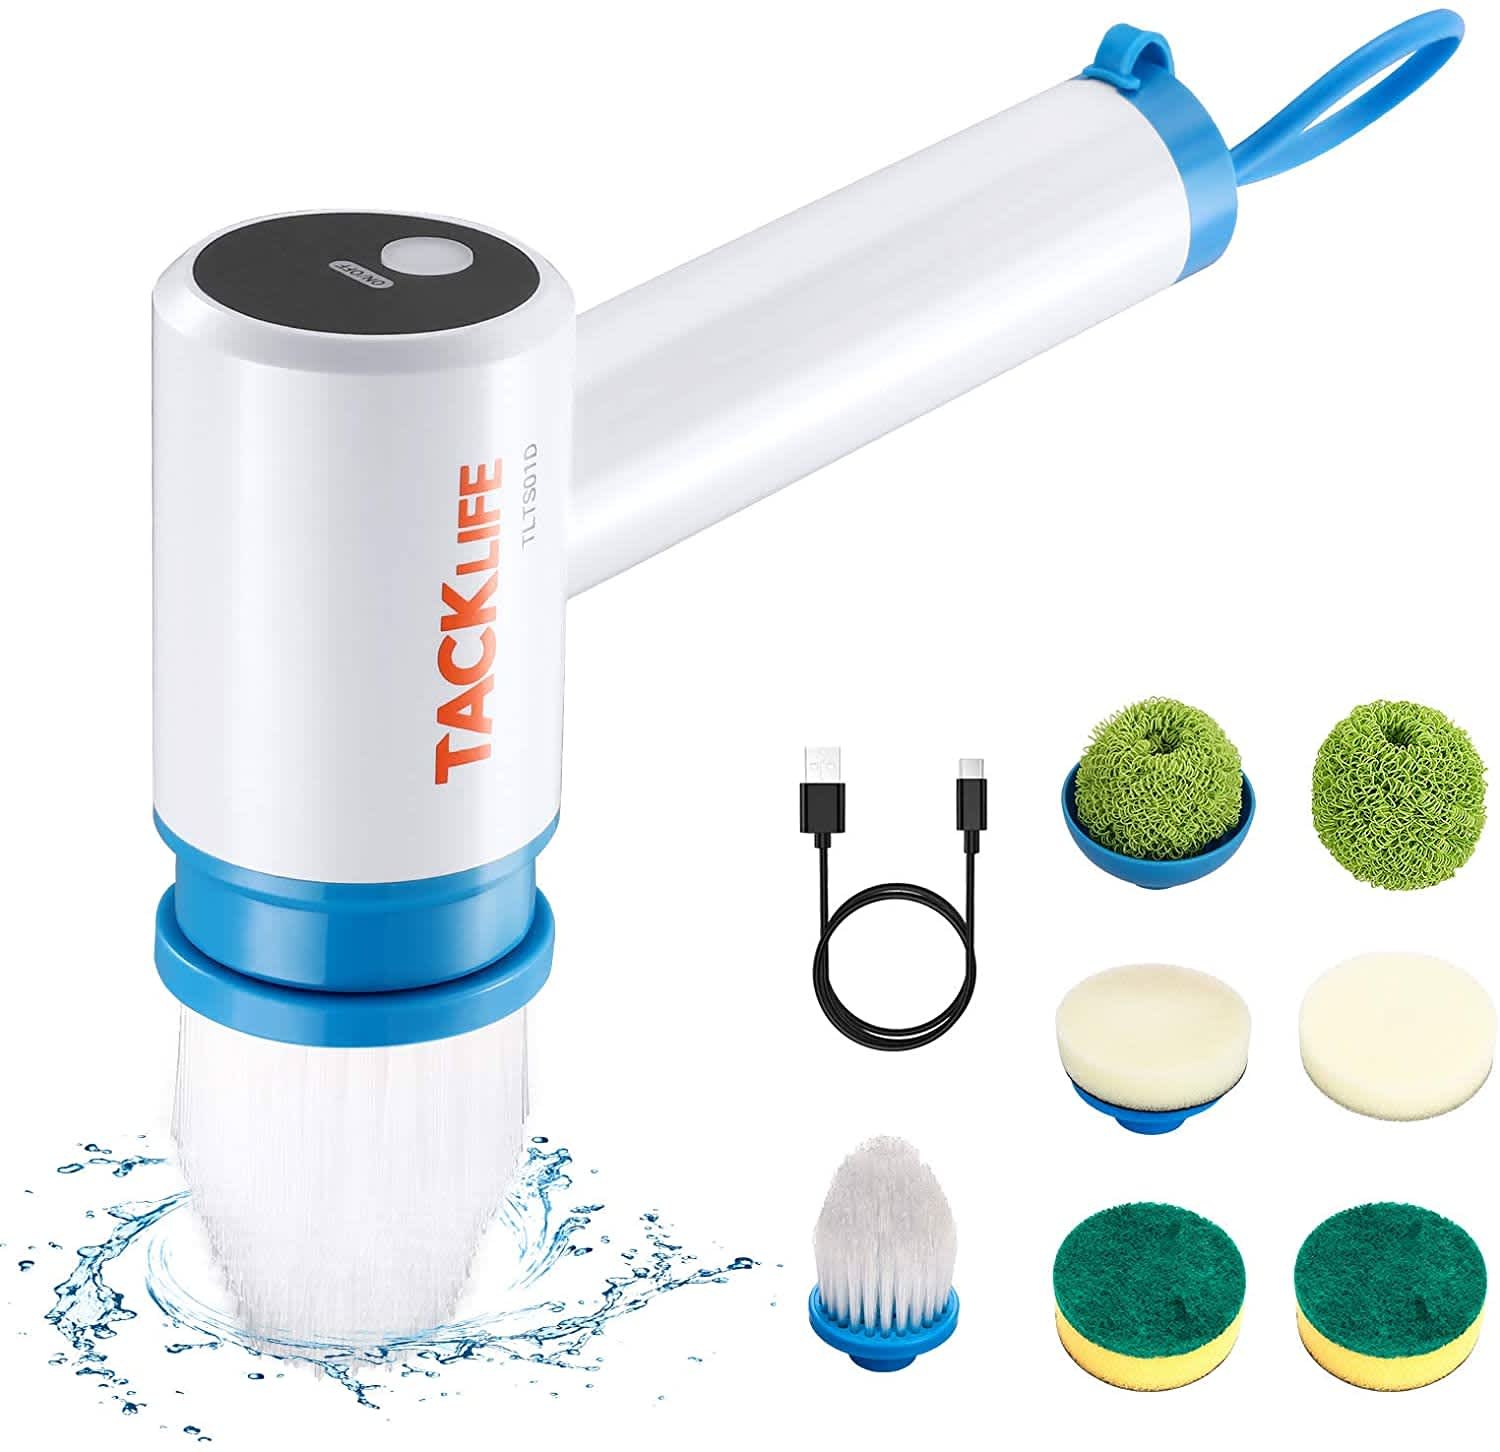 Tacklife Power Scrubber